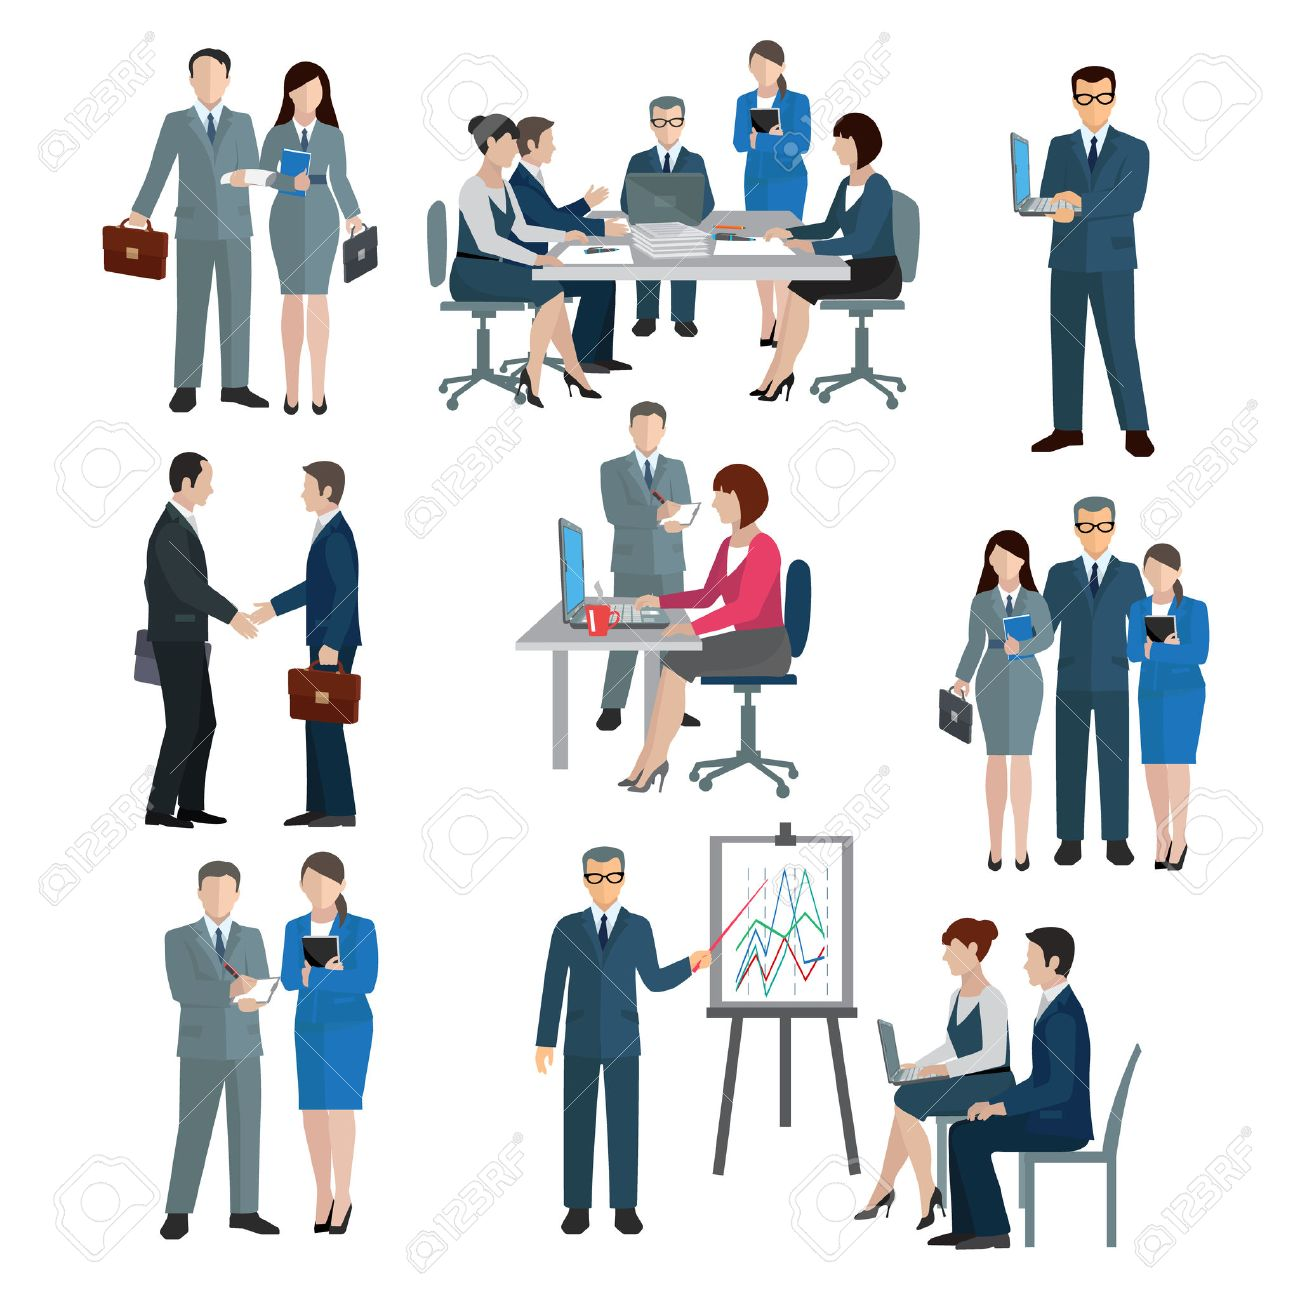 Office worker workgroup workflow businessmen and businesswomen icons set isolated vector illustration - 37811580